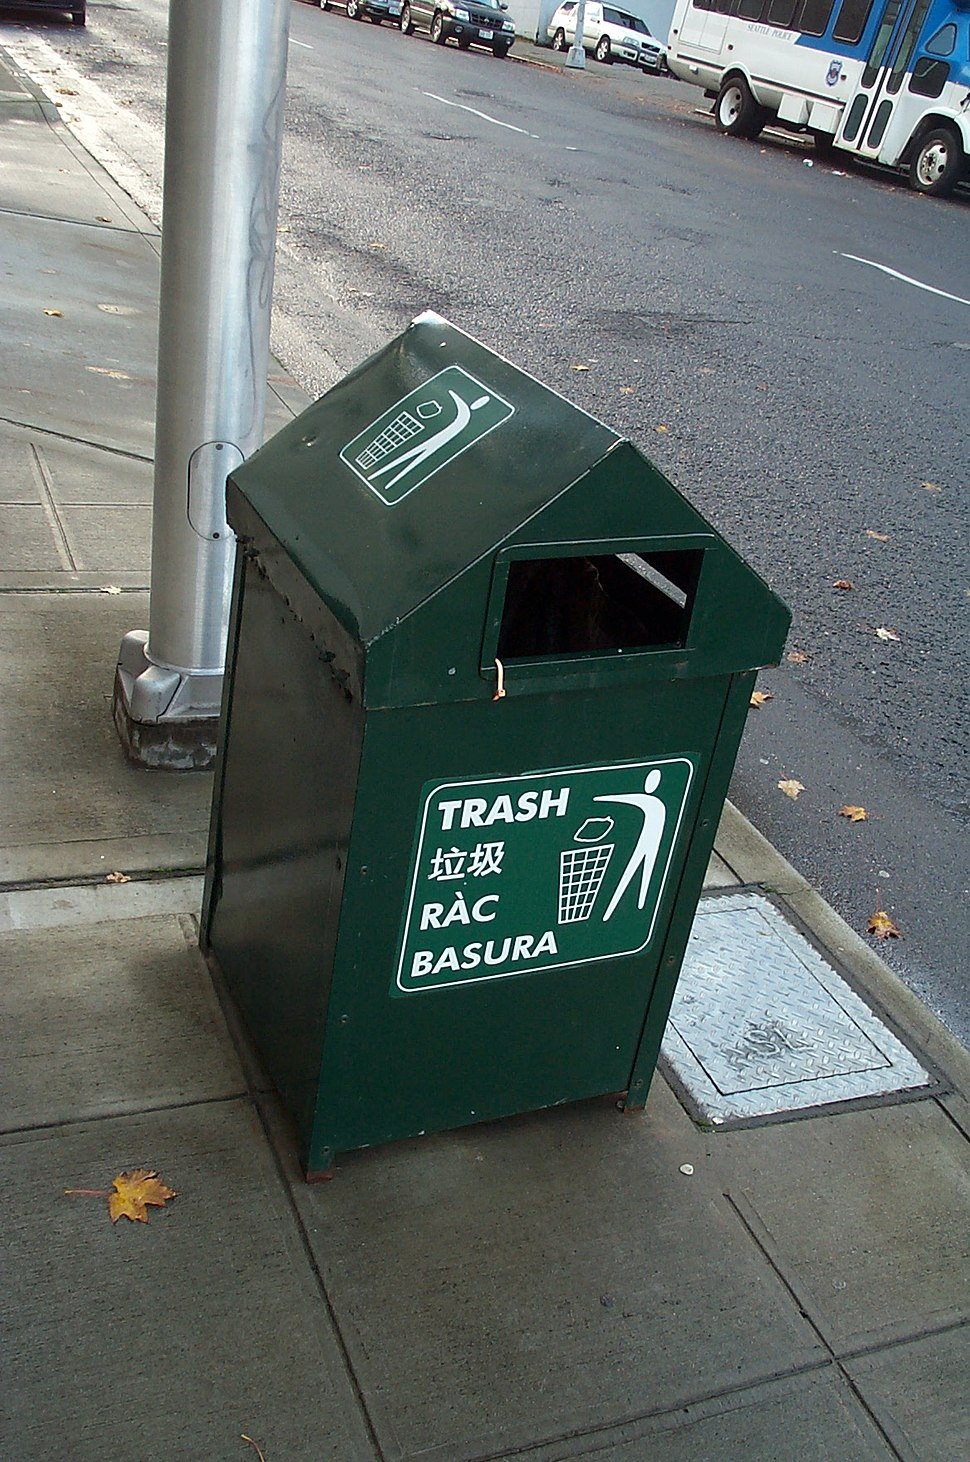 Seattle trash lese rac basura 200511